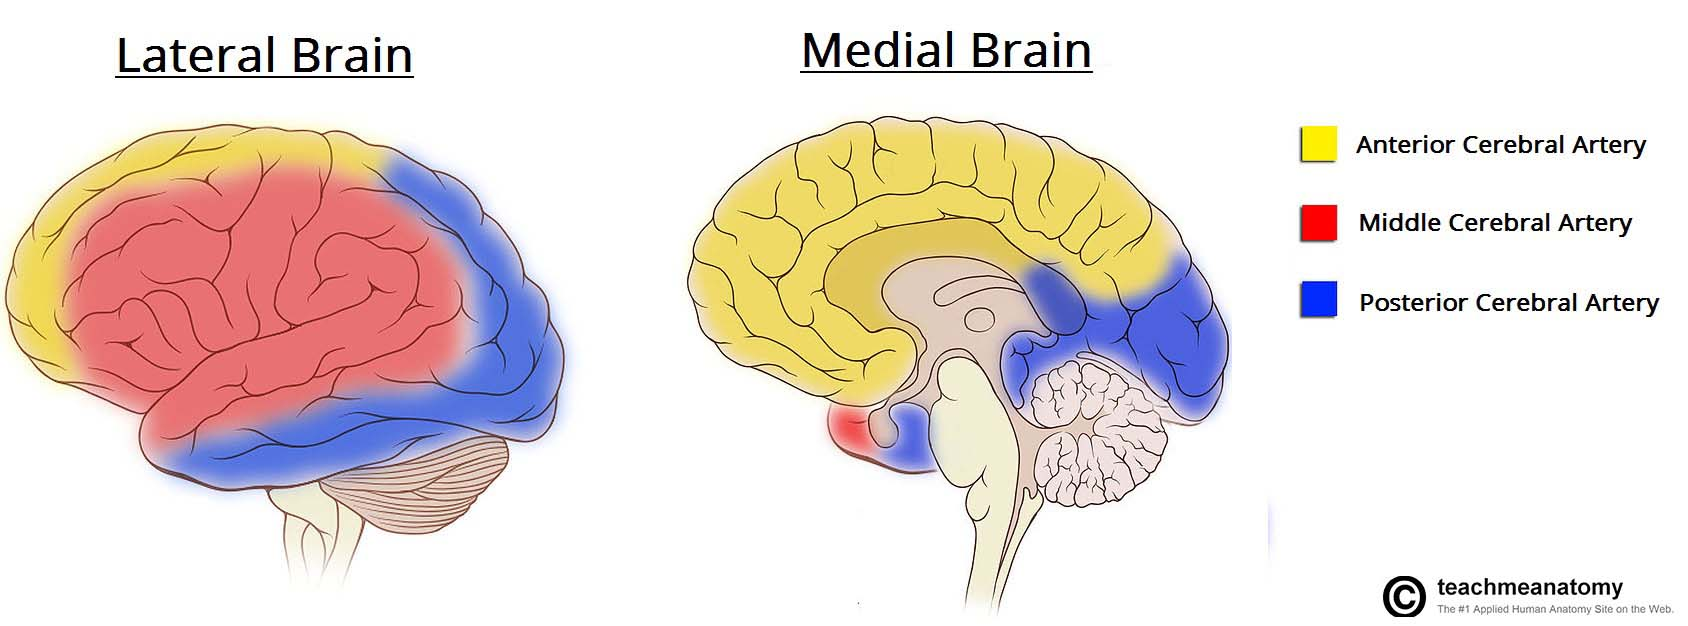 Fig 1.4 - Overview of the blood supply to the cerebrum